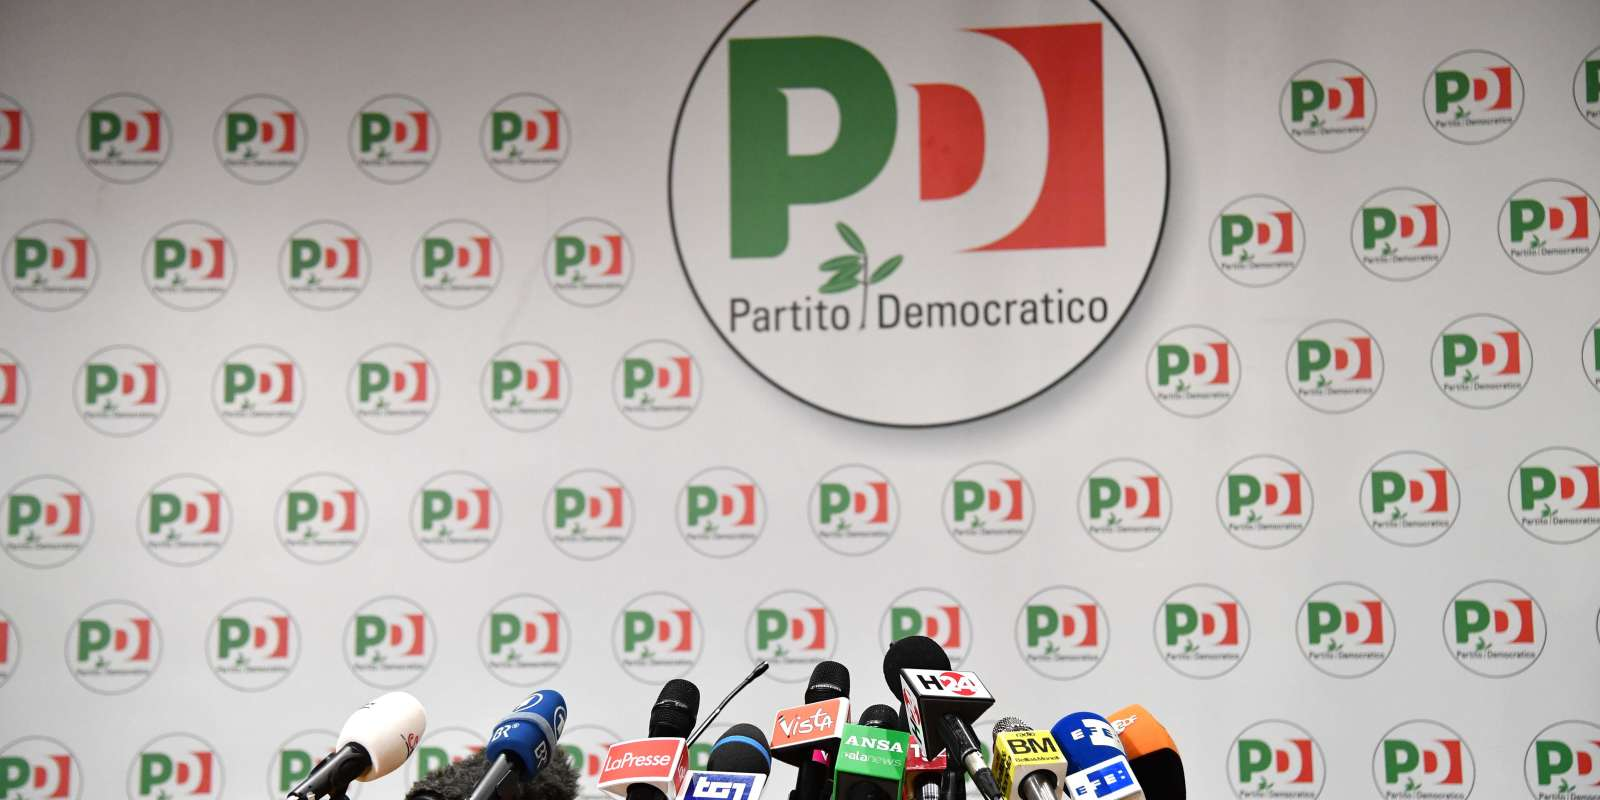 Microphones are set on a table before a press conference of former Prime Minister and leader of the Democratic Party (PD), Matteo Renzi, a day after Italy's general elections on March 5, 2018 at the PD headquarters in Rome. The centre-left coalition led by Renzi's Democratic Party (PD), in power going into the elections, is set to pick up just 23.6 percent of the vote in Sunday's election, down on the last polling figures allowed before the election and a huge blow to the PD's chances of being part of the next government. / AFP / Alberto PIZZOLI